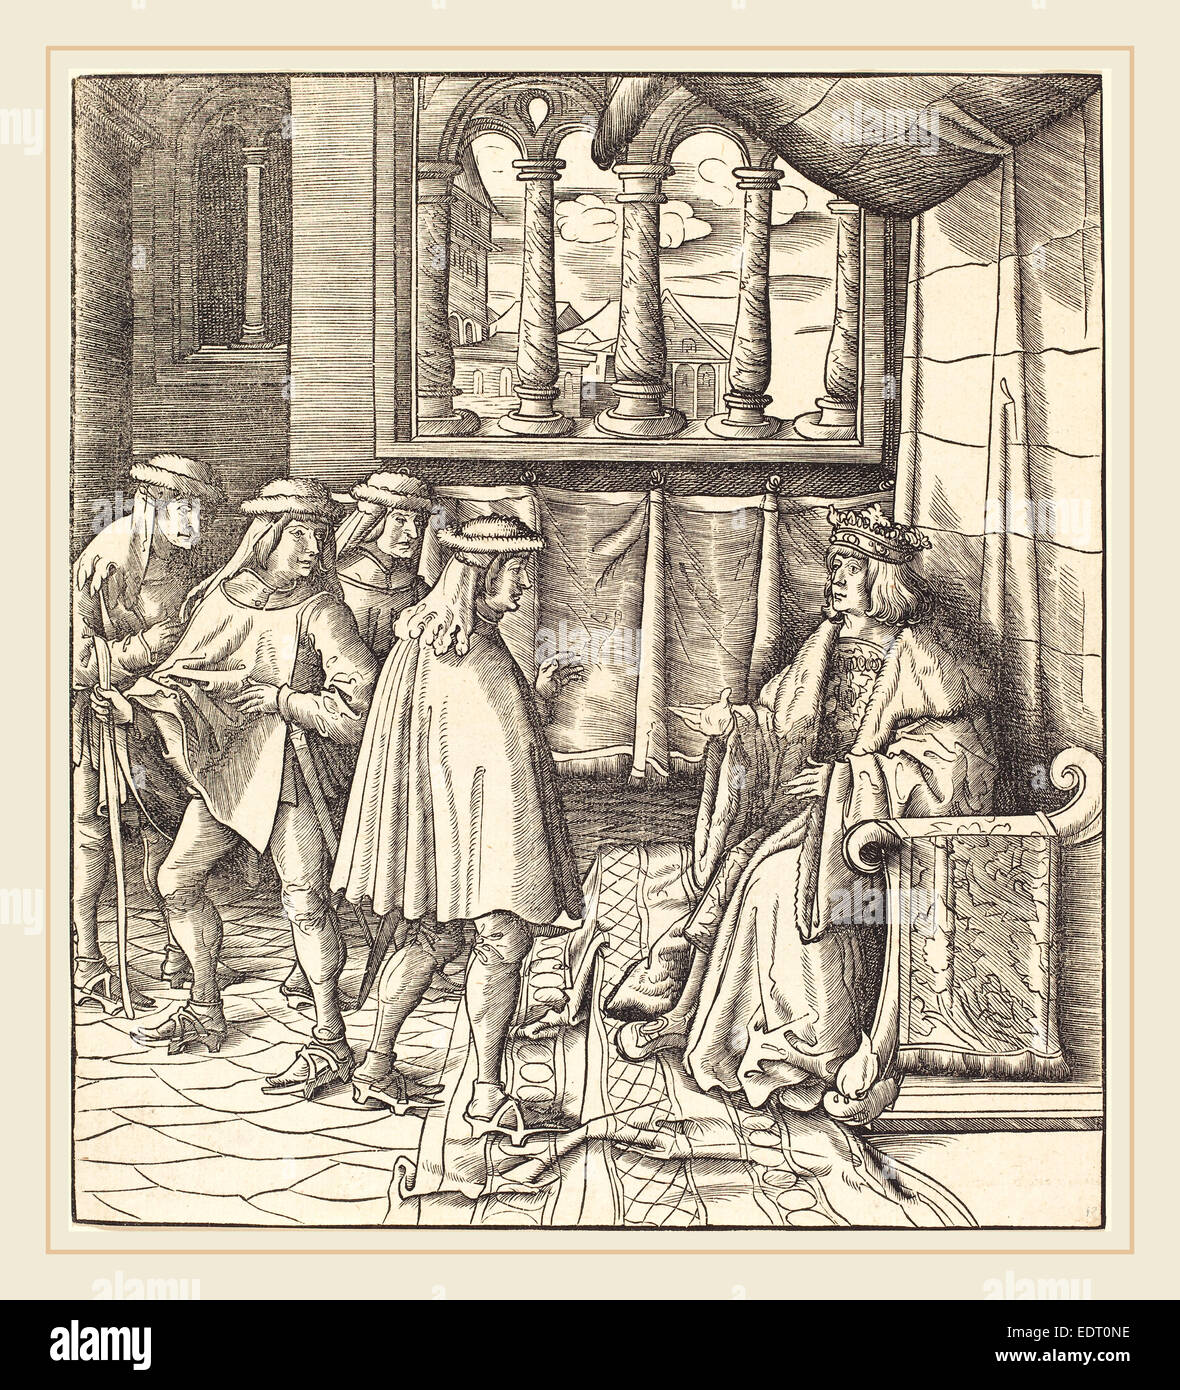 1480-1542), A King on a Throne, before him Four Men, 1514-1516, woodcut